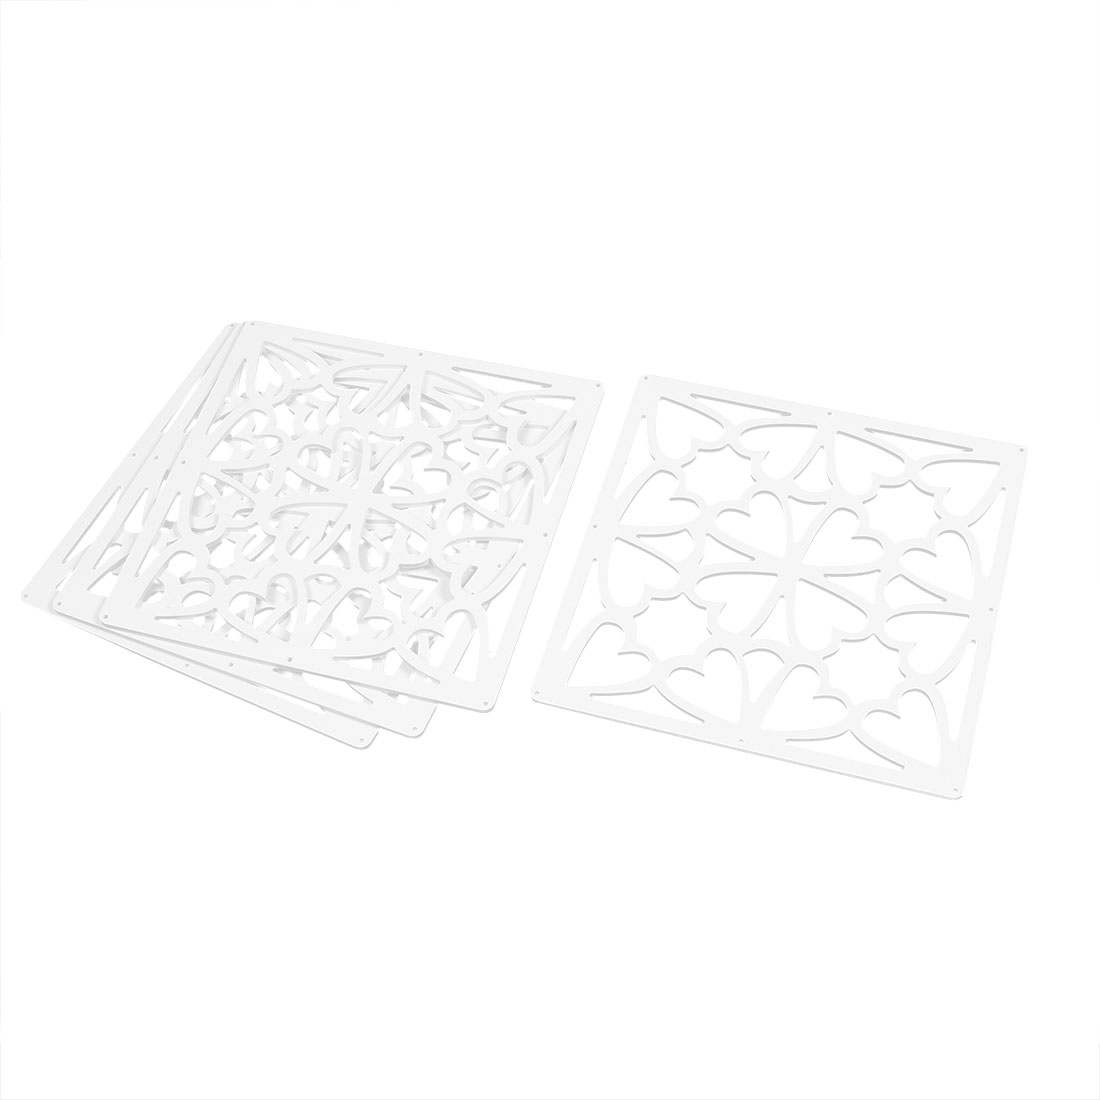 Hall Heart Pattern Carved Window Divider Hanging Screen White 29cm x 29cm 4pcs